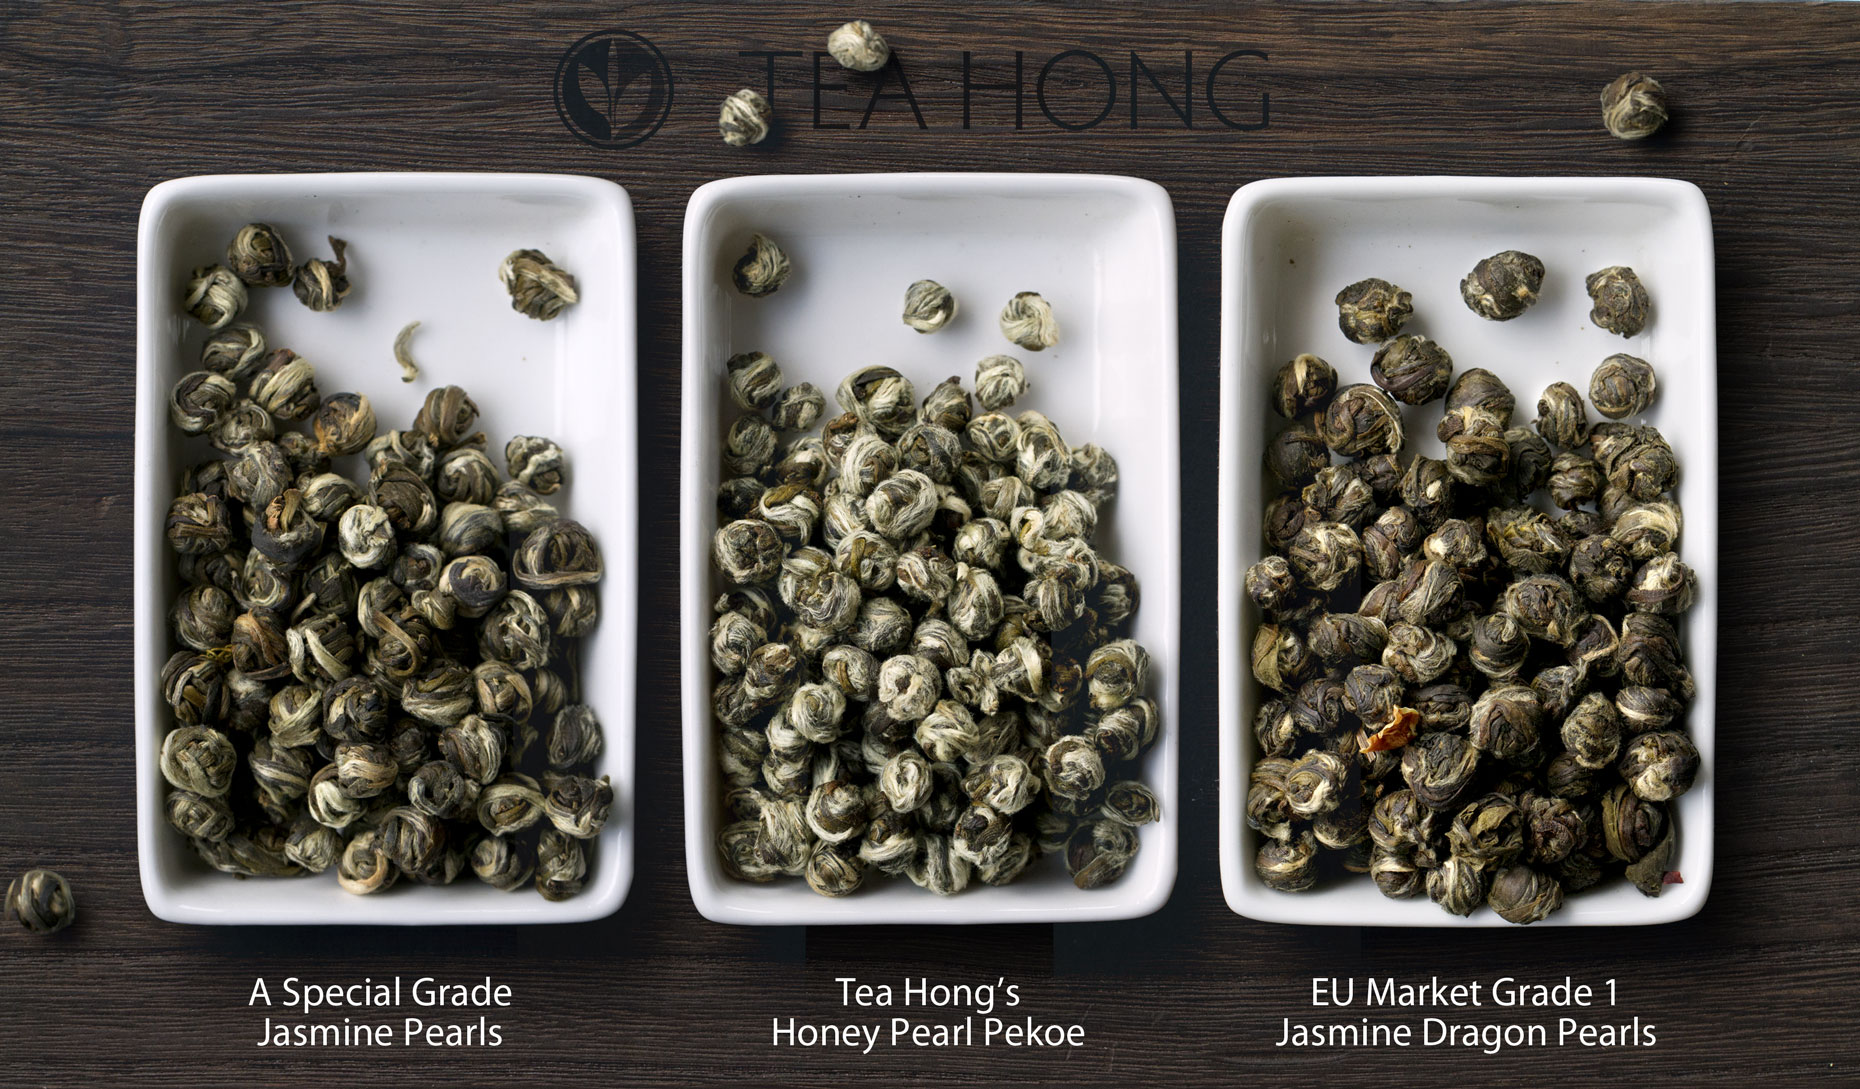 Comparing the tealeaves of two other jasmine pearls with that of Tea Hong's Honey Pearl Pekoe